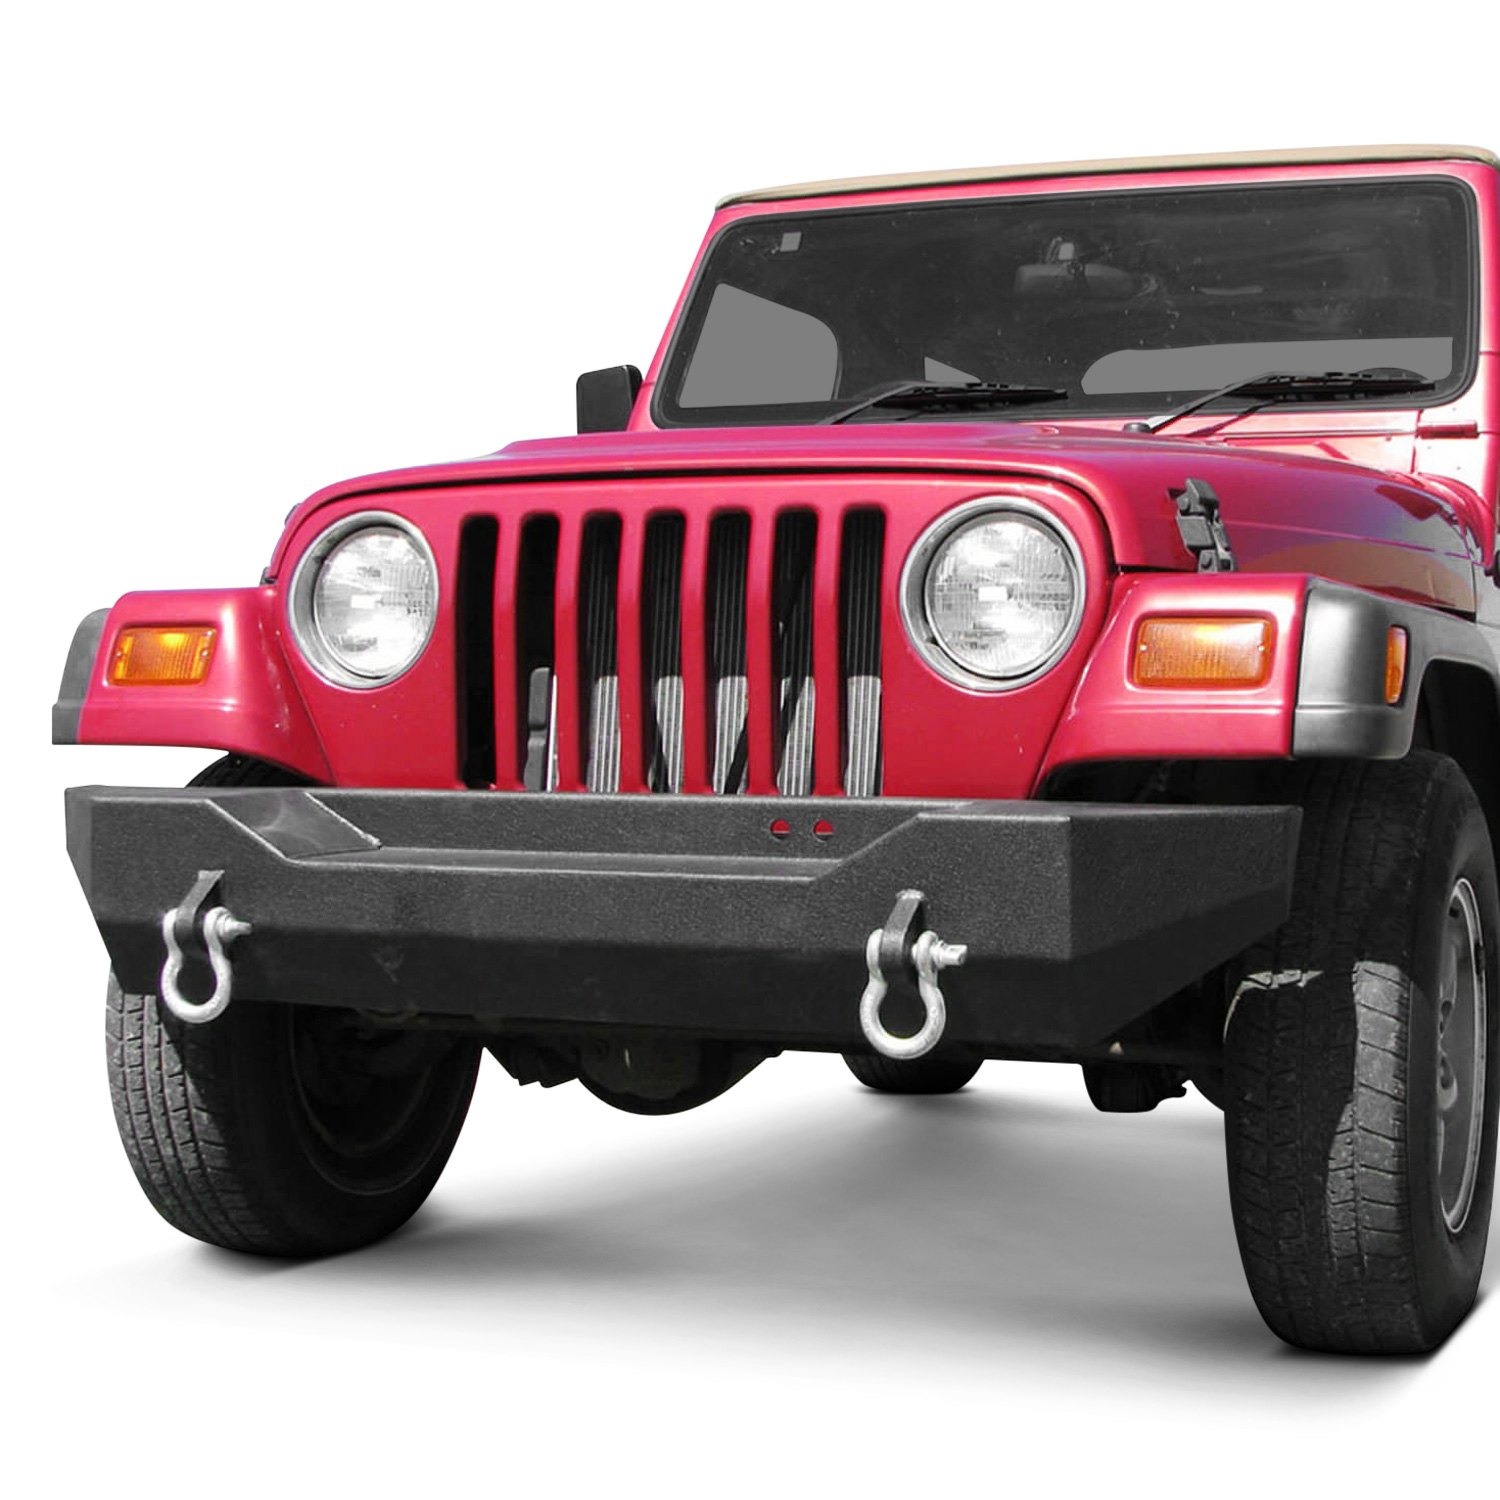 Car Bumpers Automotive Parts And Accessories At .html